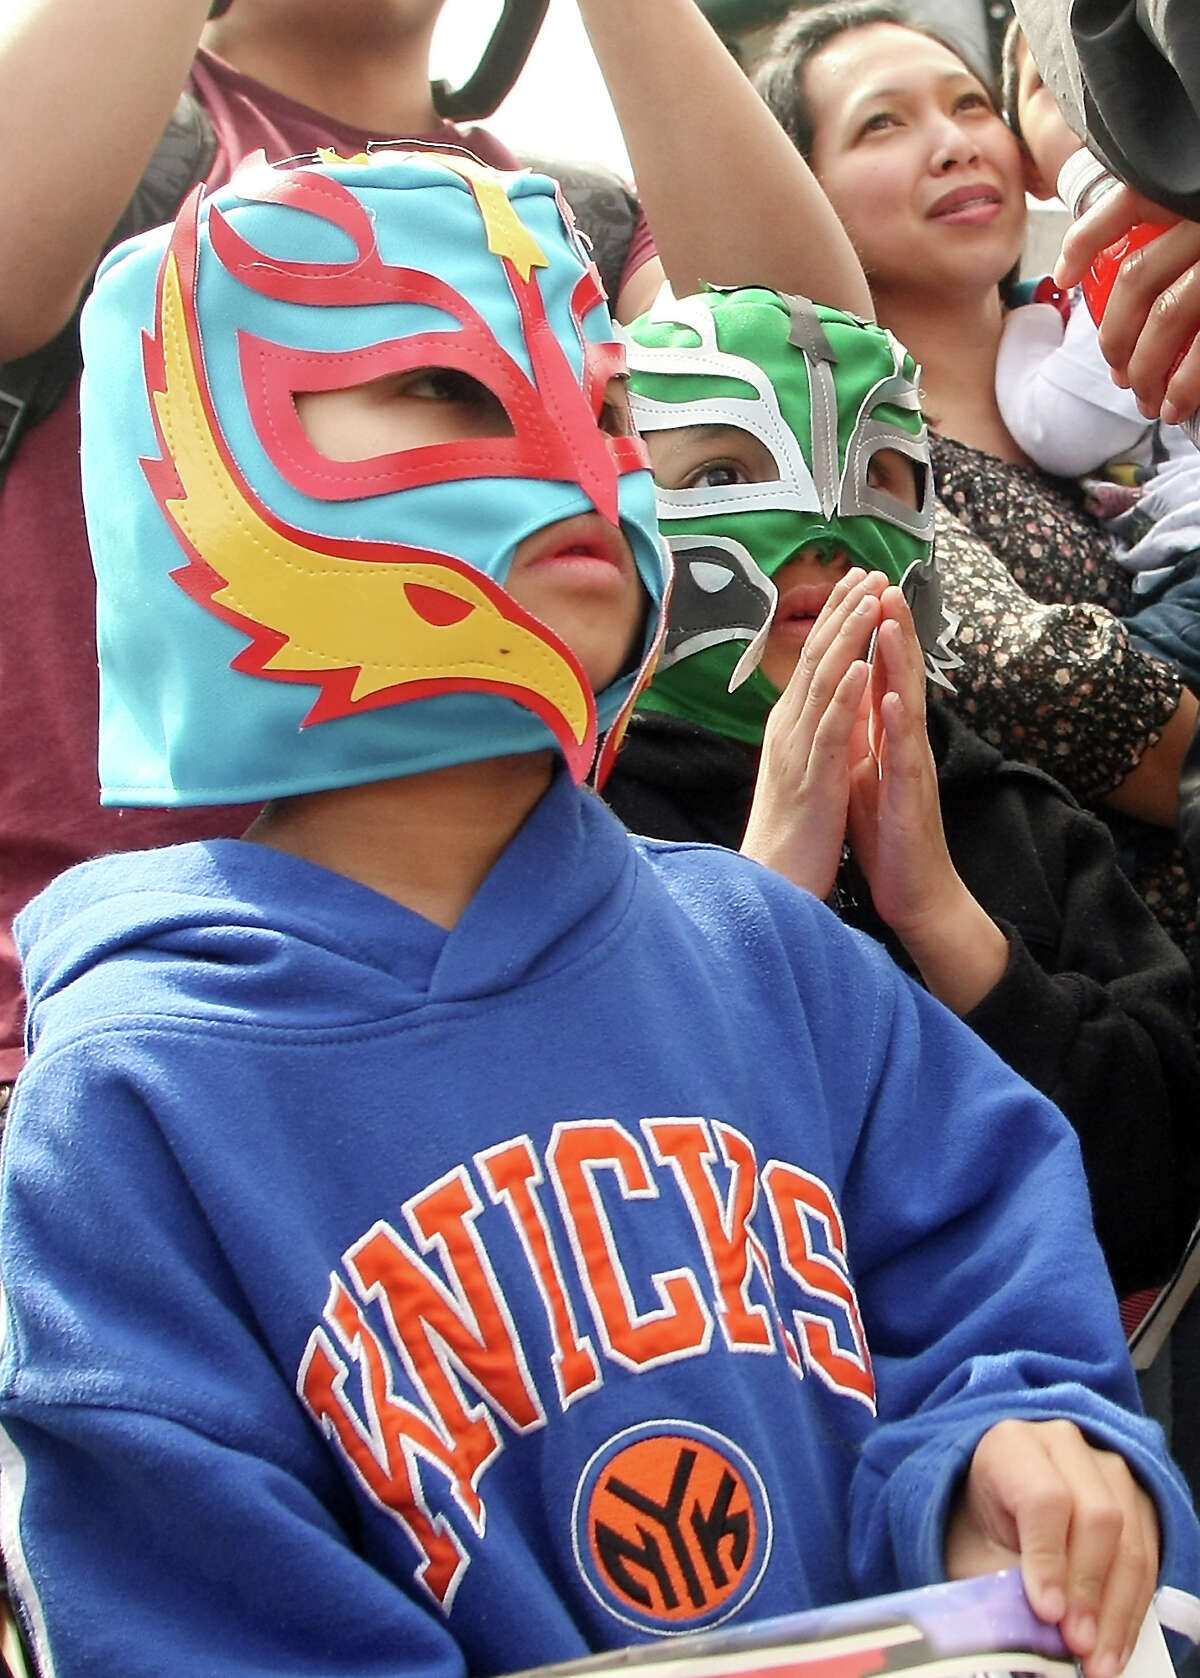 Wearing their traditional Lucha Libre masks, Cedric Quindo, 7, and Gavin Alasagas, 6, watch the wrestling match in the parking lot of La Poblanita restaurant during the Cinco de Mayo Street Fair in Bremerton, Wash. on Saturday May 5, 2012.